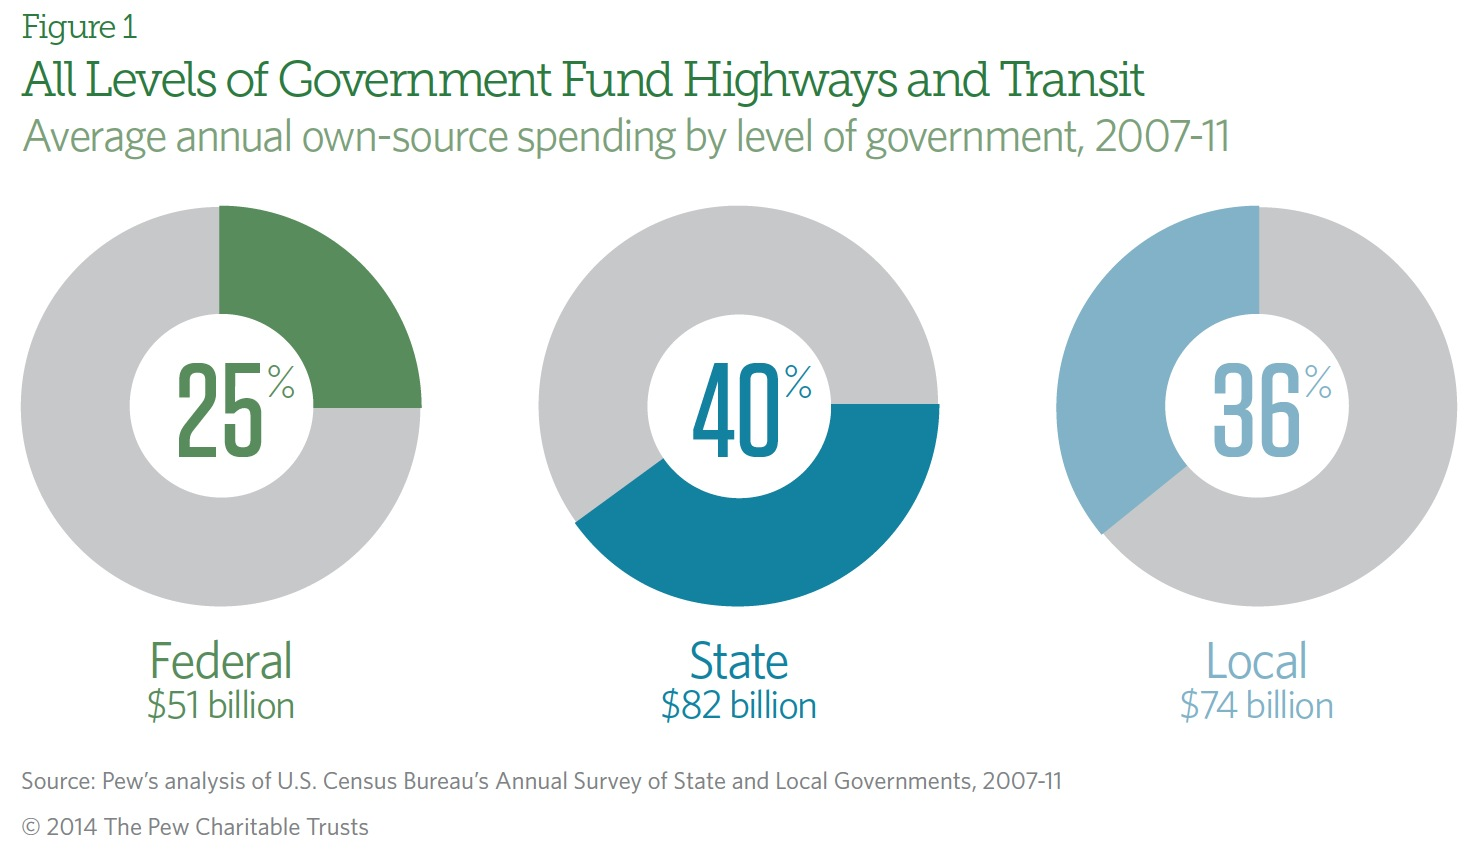 All Levels of Government Fund Highways and Transit